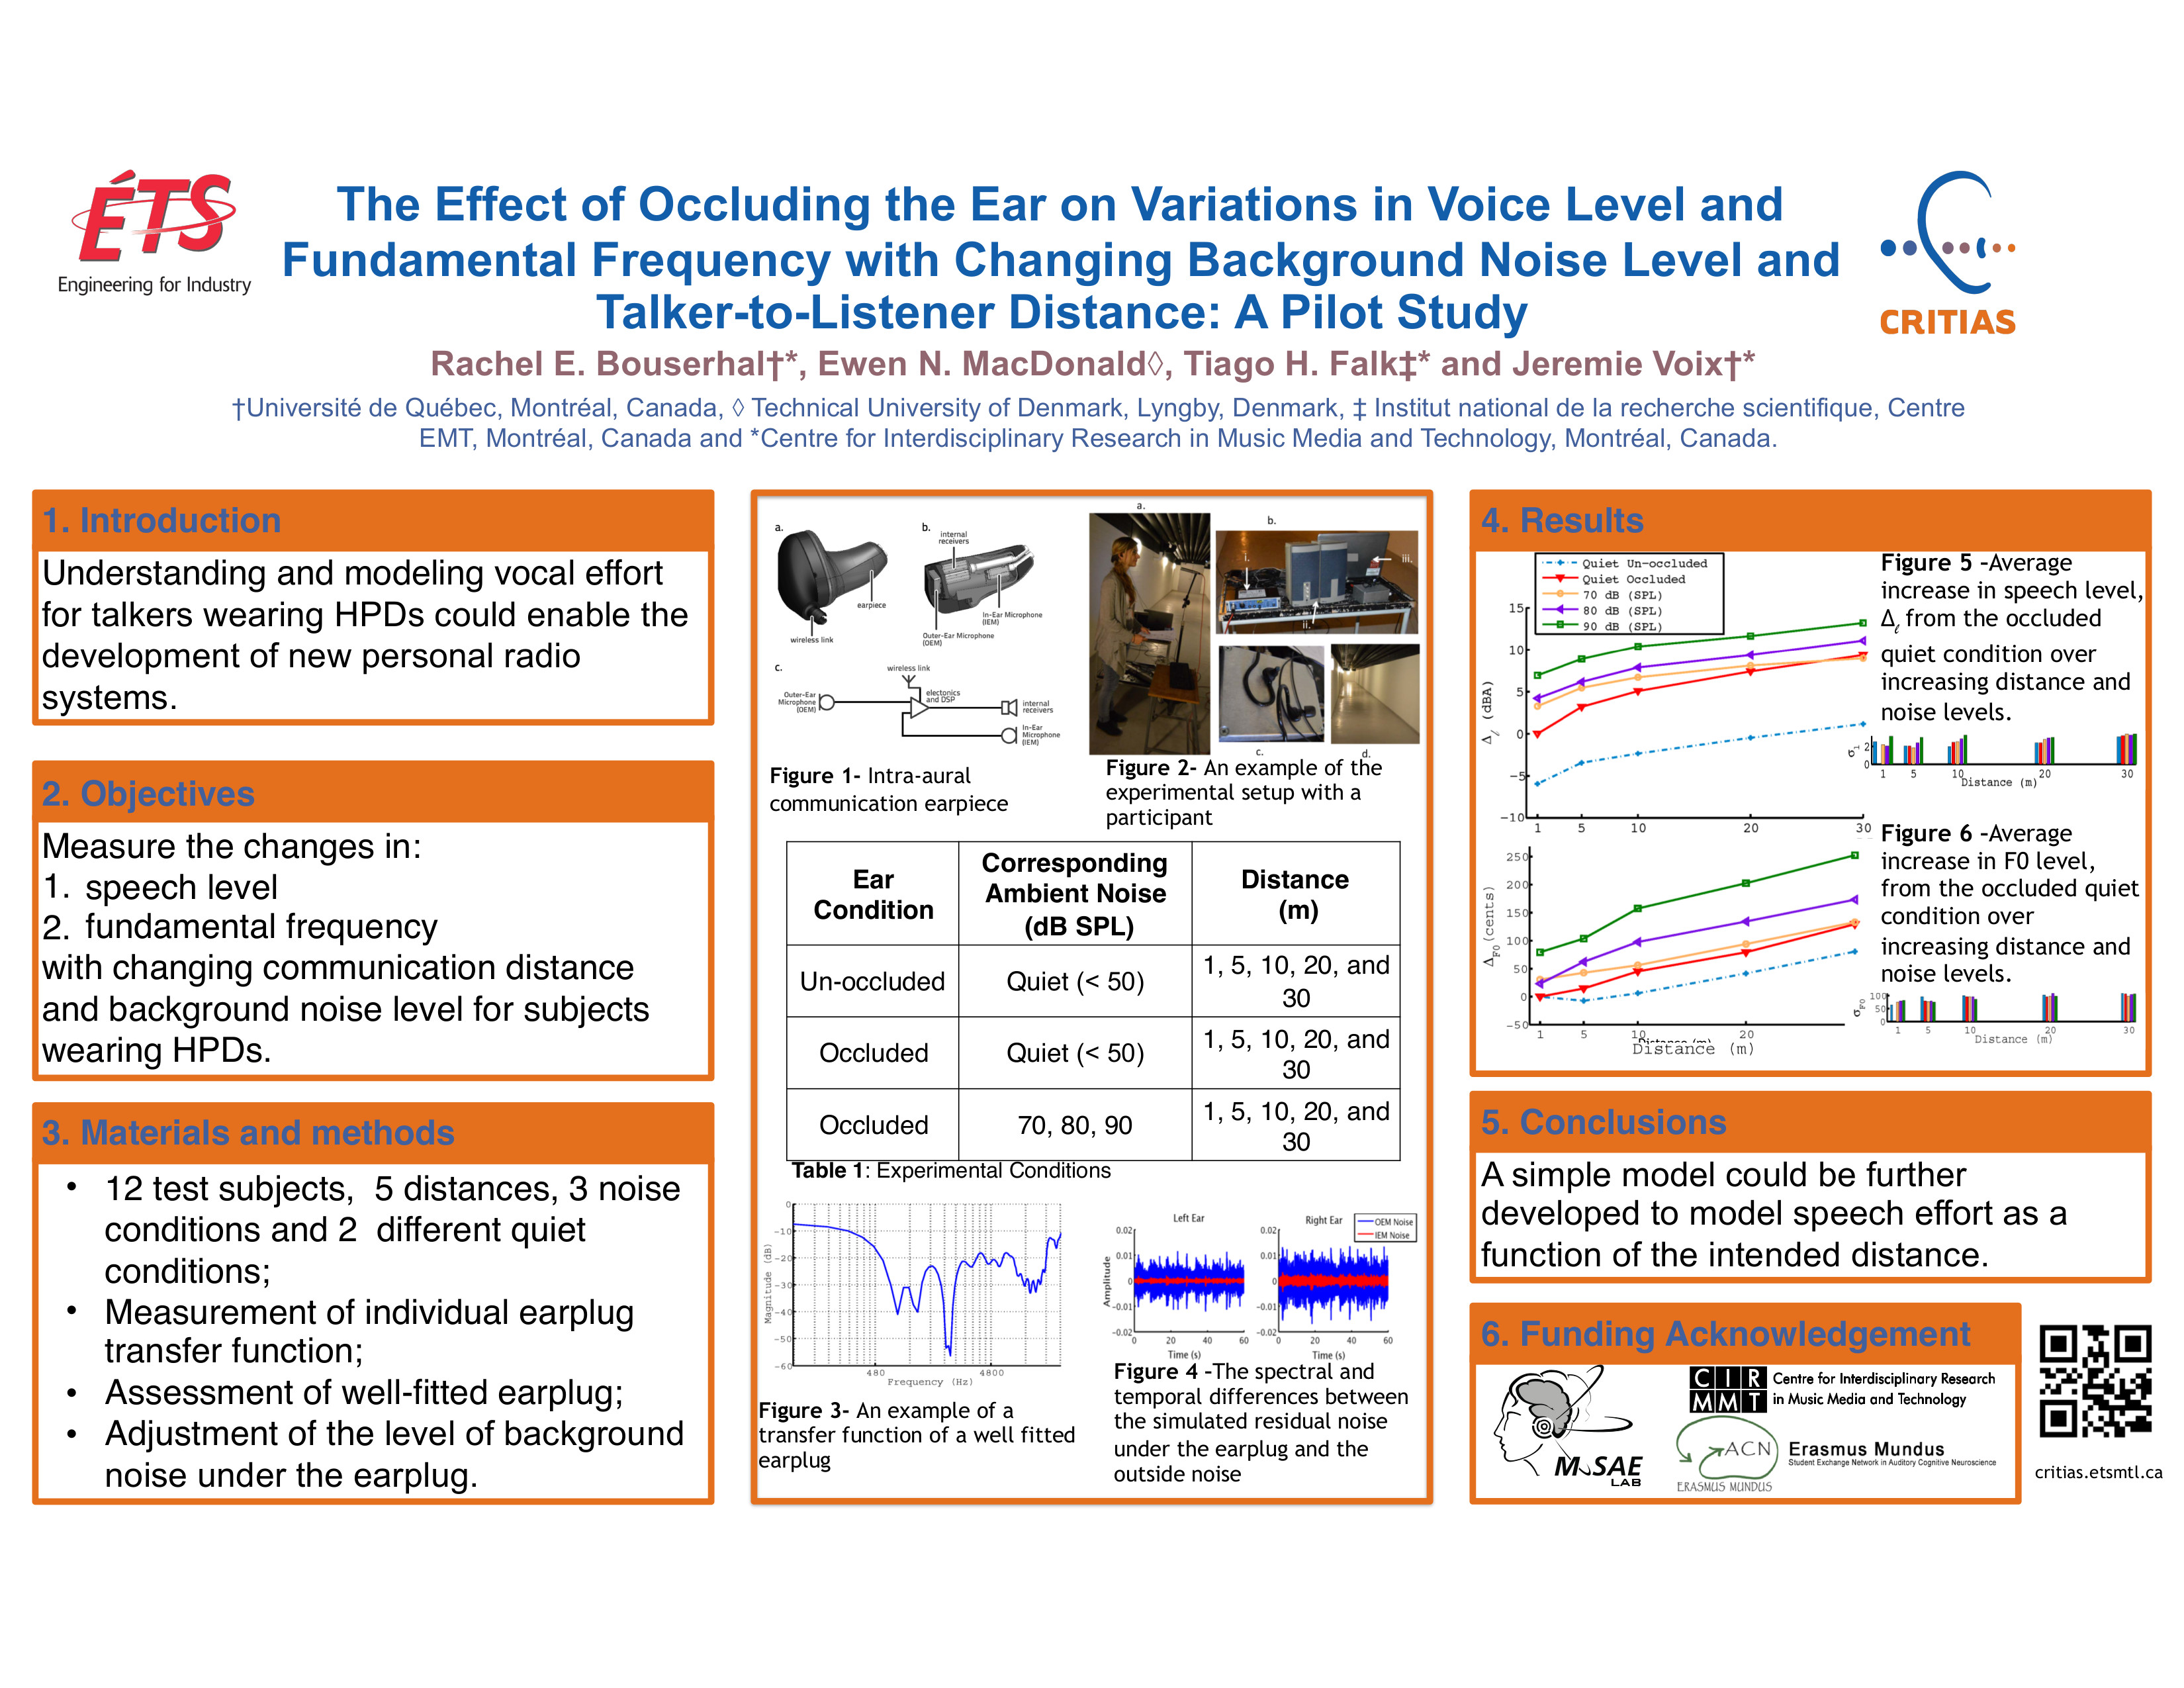 Rachel BouSerhal et al. - 2016 - The Effect of Occluding the Ear on Variations in Voice Level